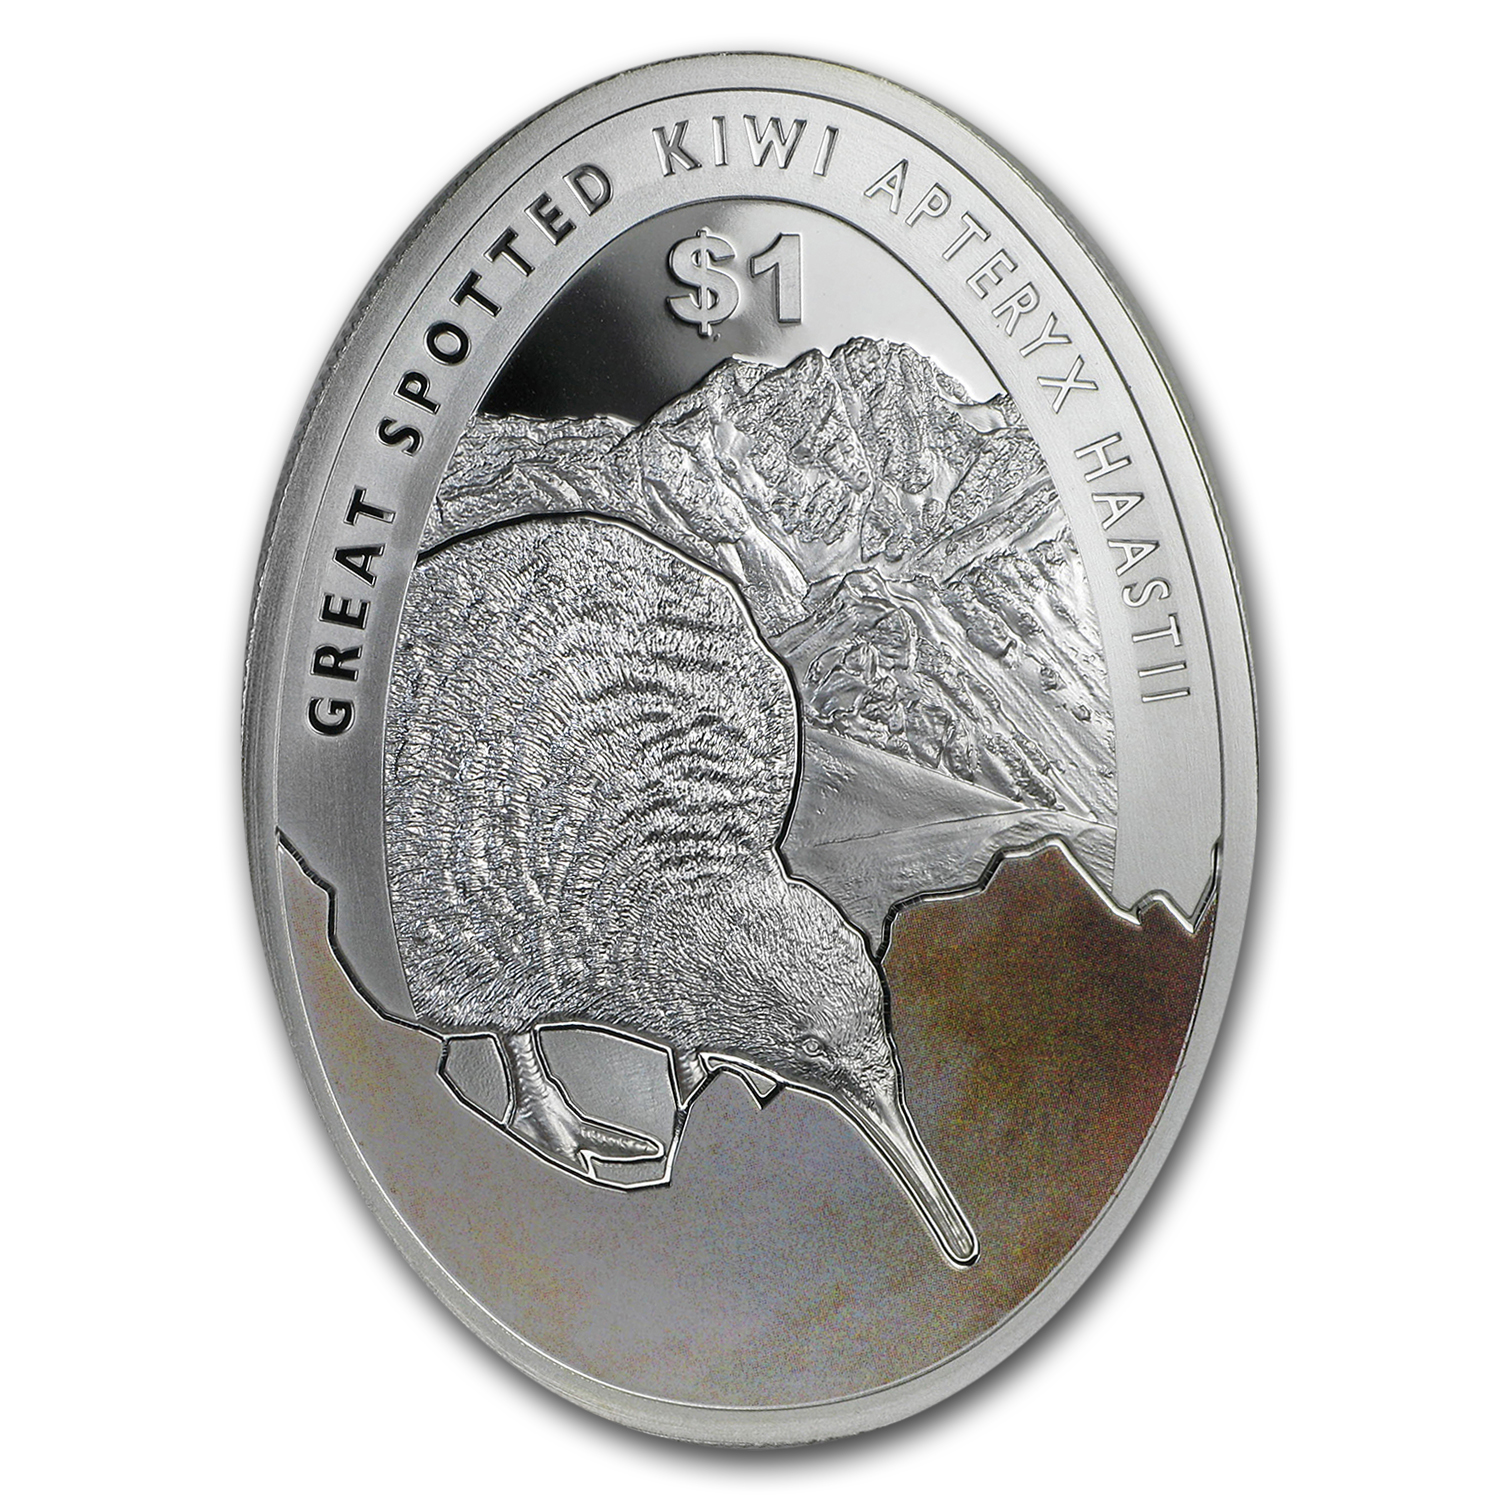 2016 New Zealand 1 oz Silver Kiwi Egg-Shaped Proof Specimen